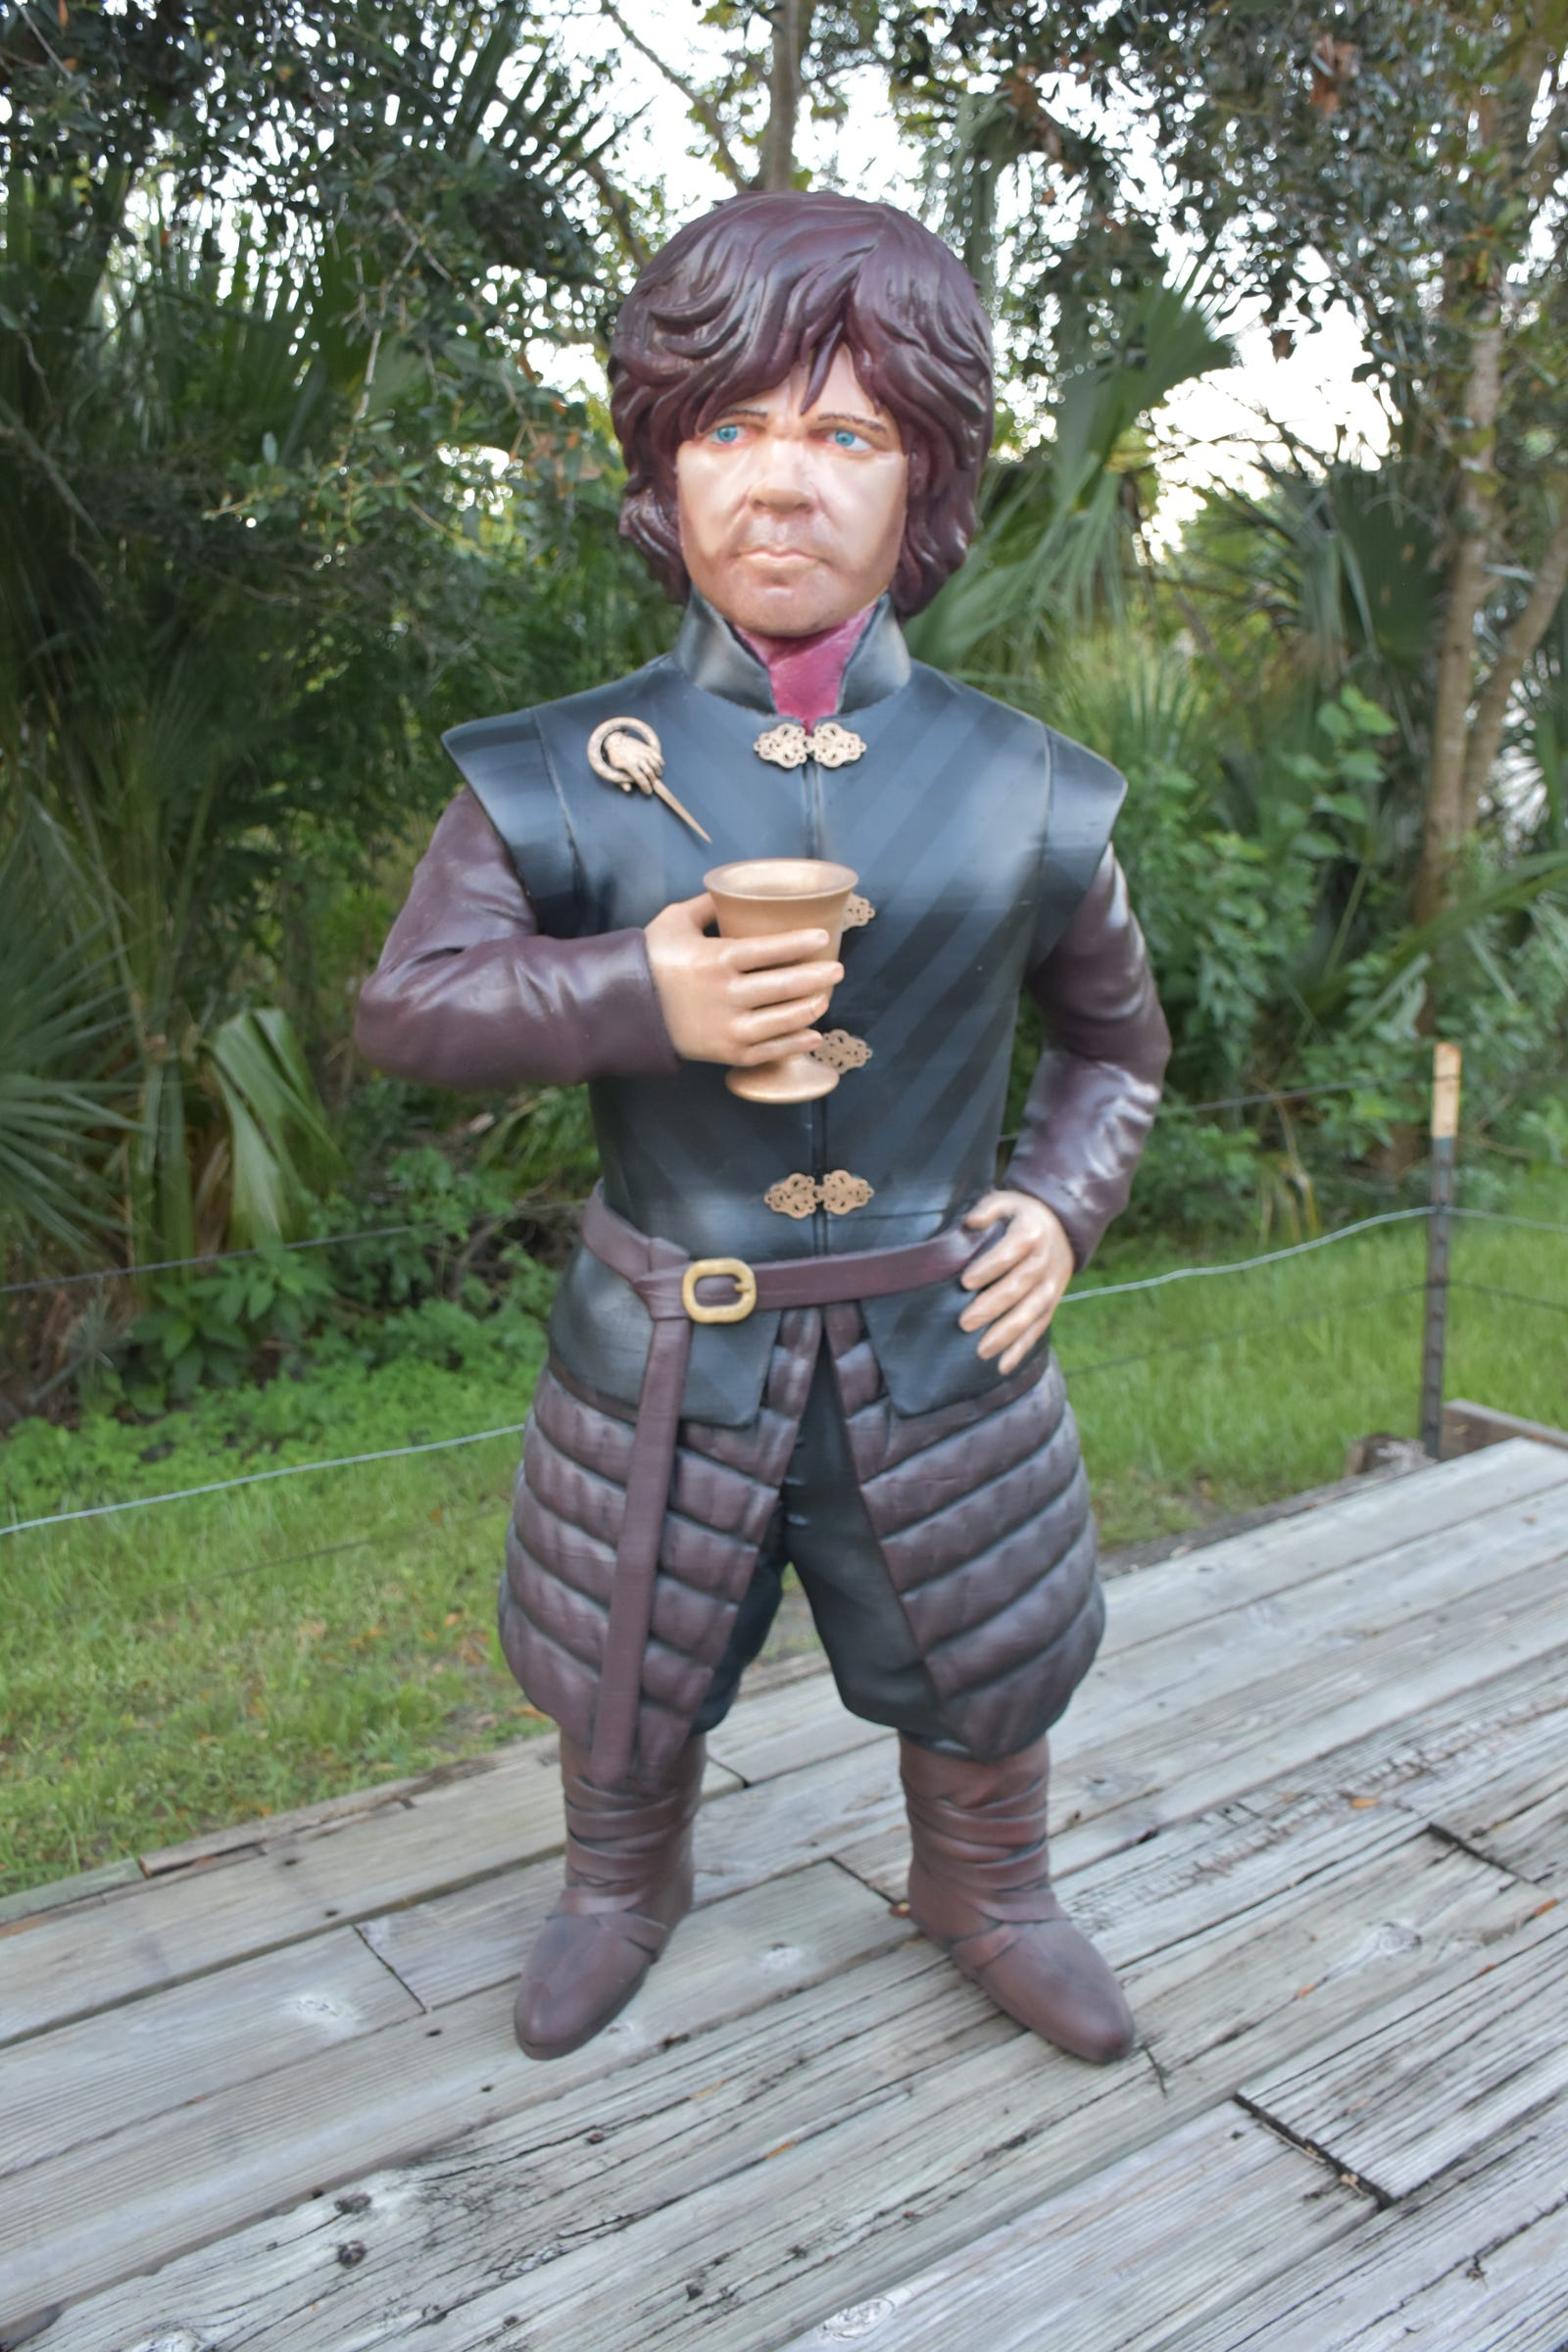 The full image of the Tyrion Lannister figure, complete with goblet.